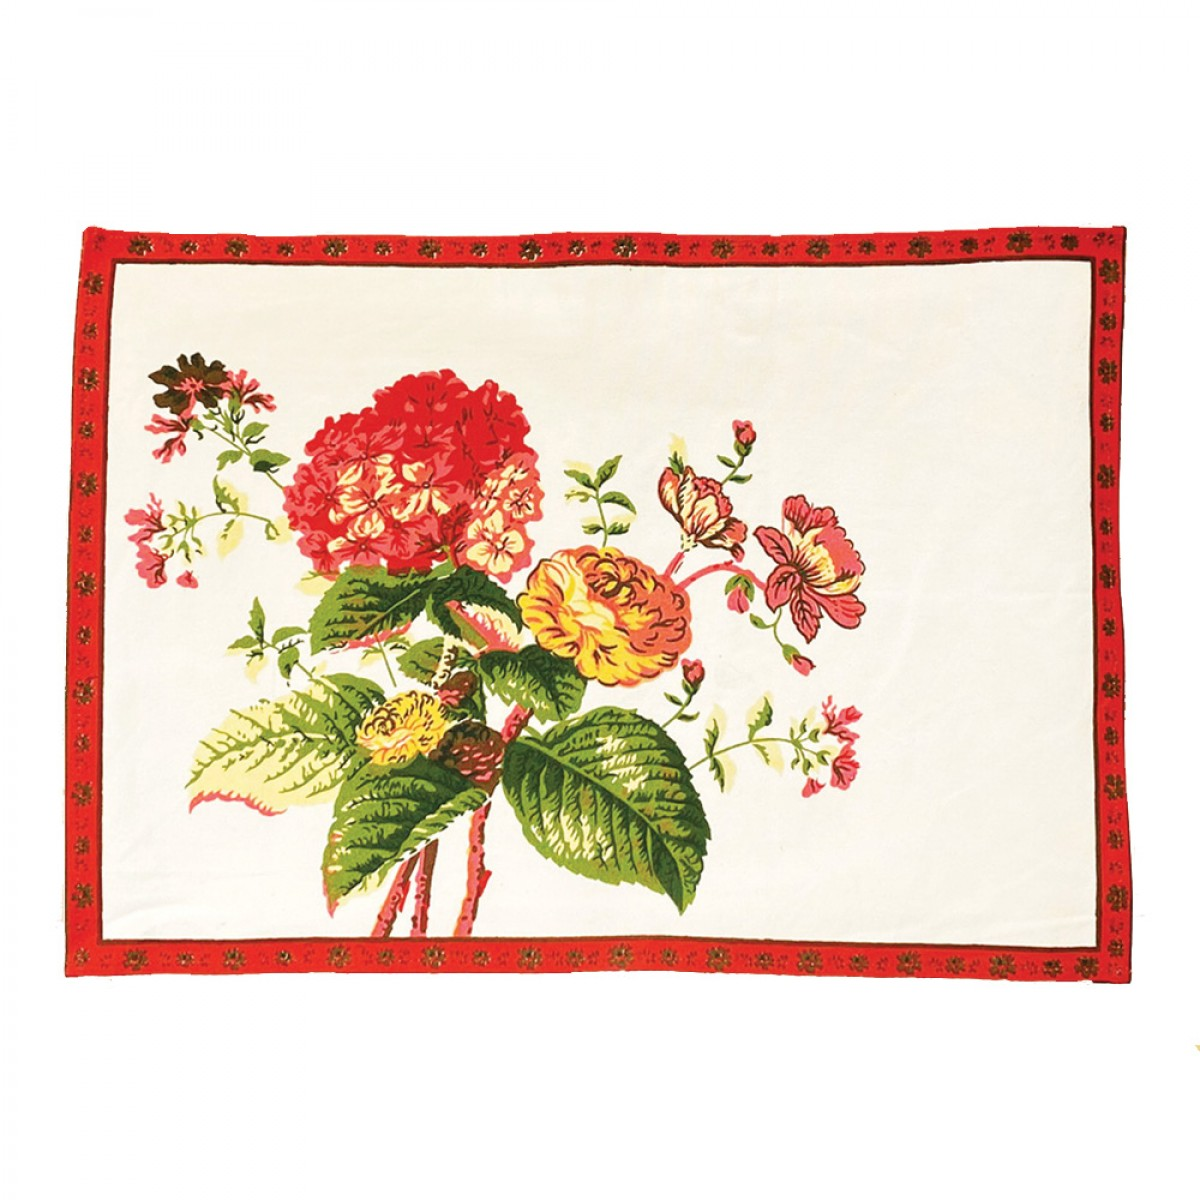 Table Mats - Chelsea Holly (set of 6)